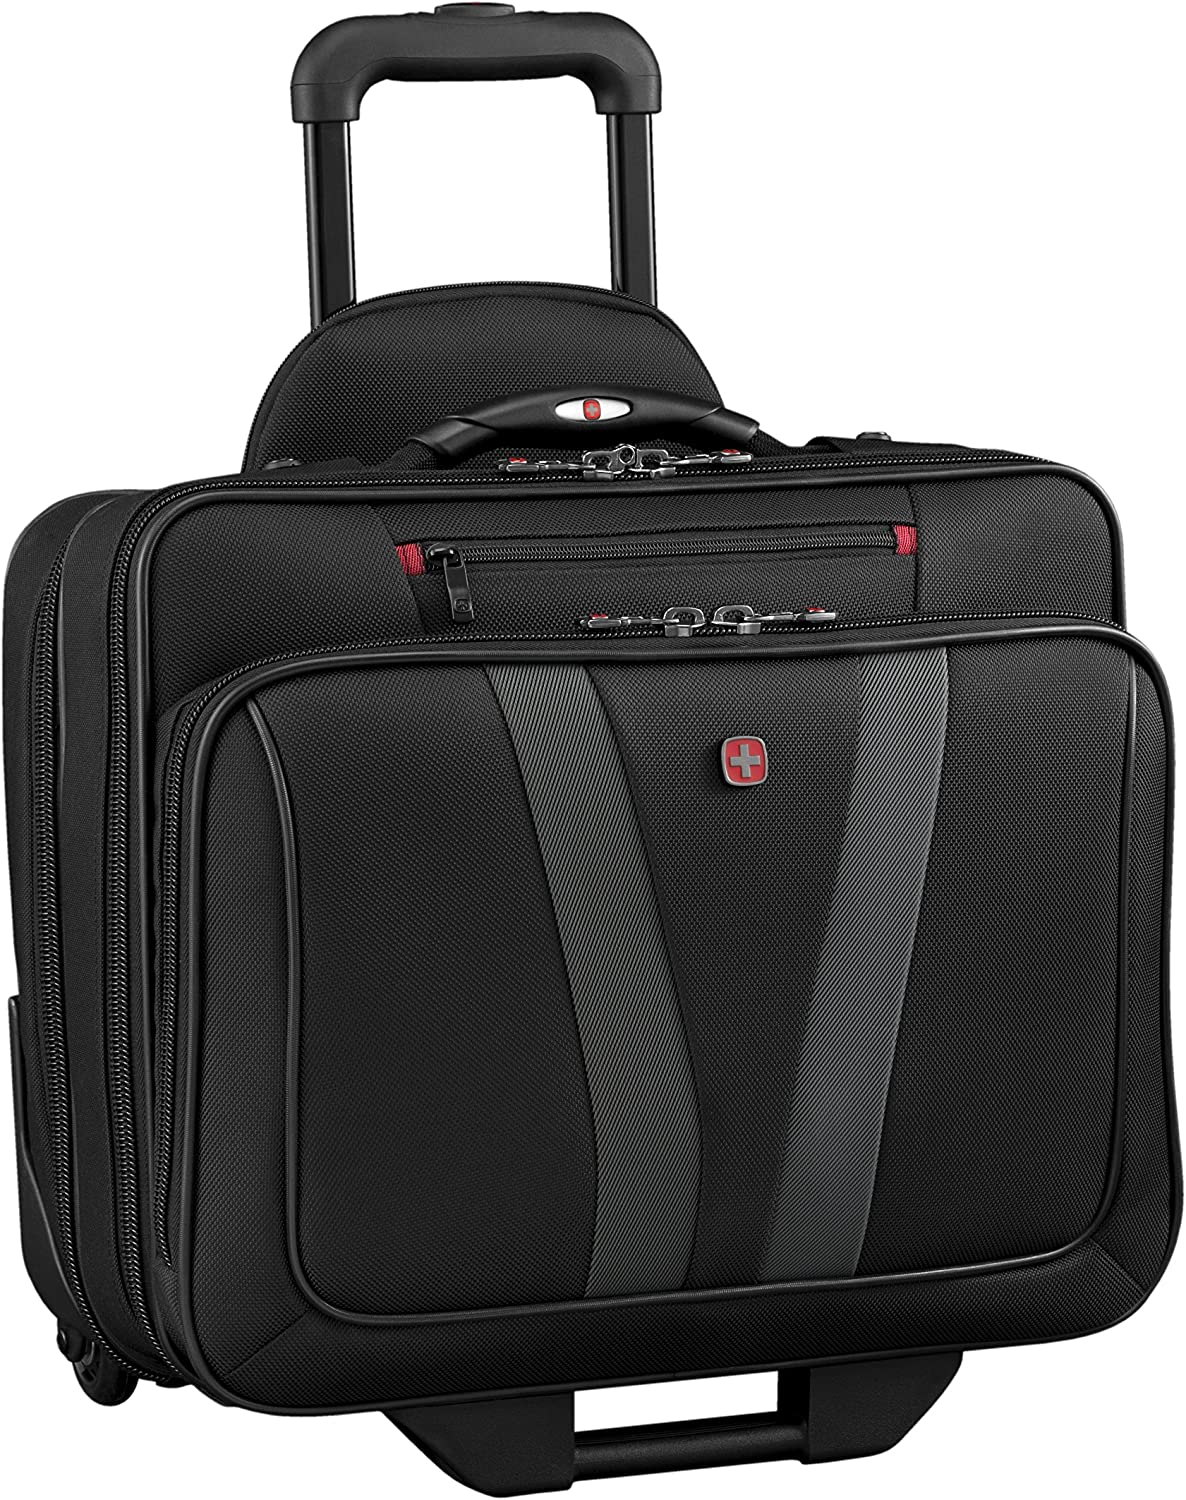 Wenger Luggage Granada Pro Padded Wheeled Laptop Bag with Pass-Thru, Black, 15.6-inch